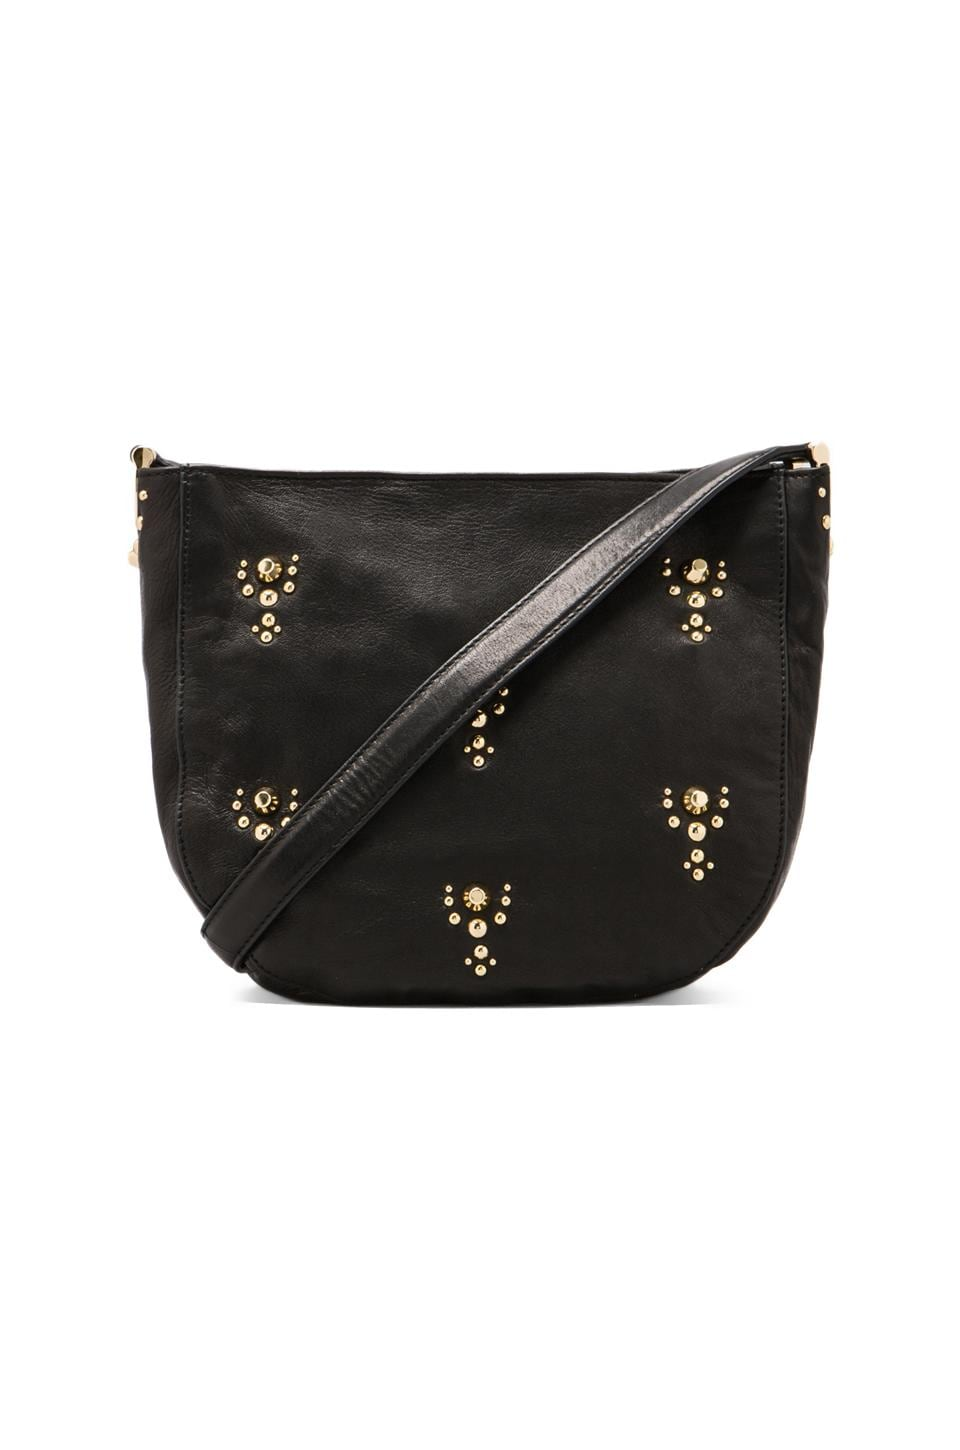 Juicy Couture Topanga Leather Crossbody Bag in Black